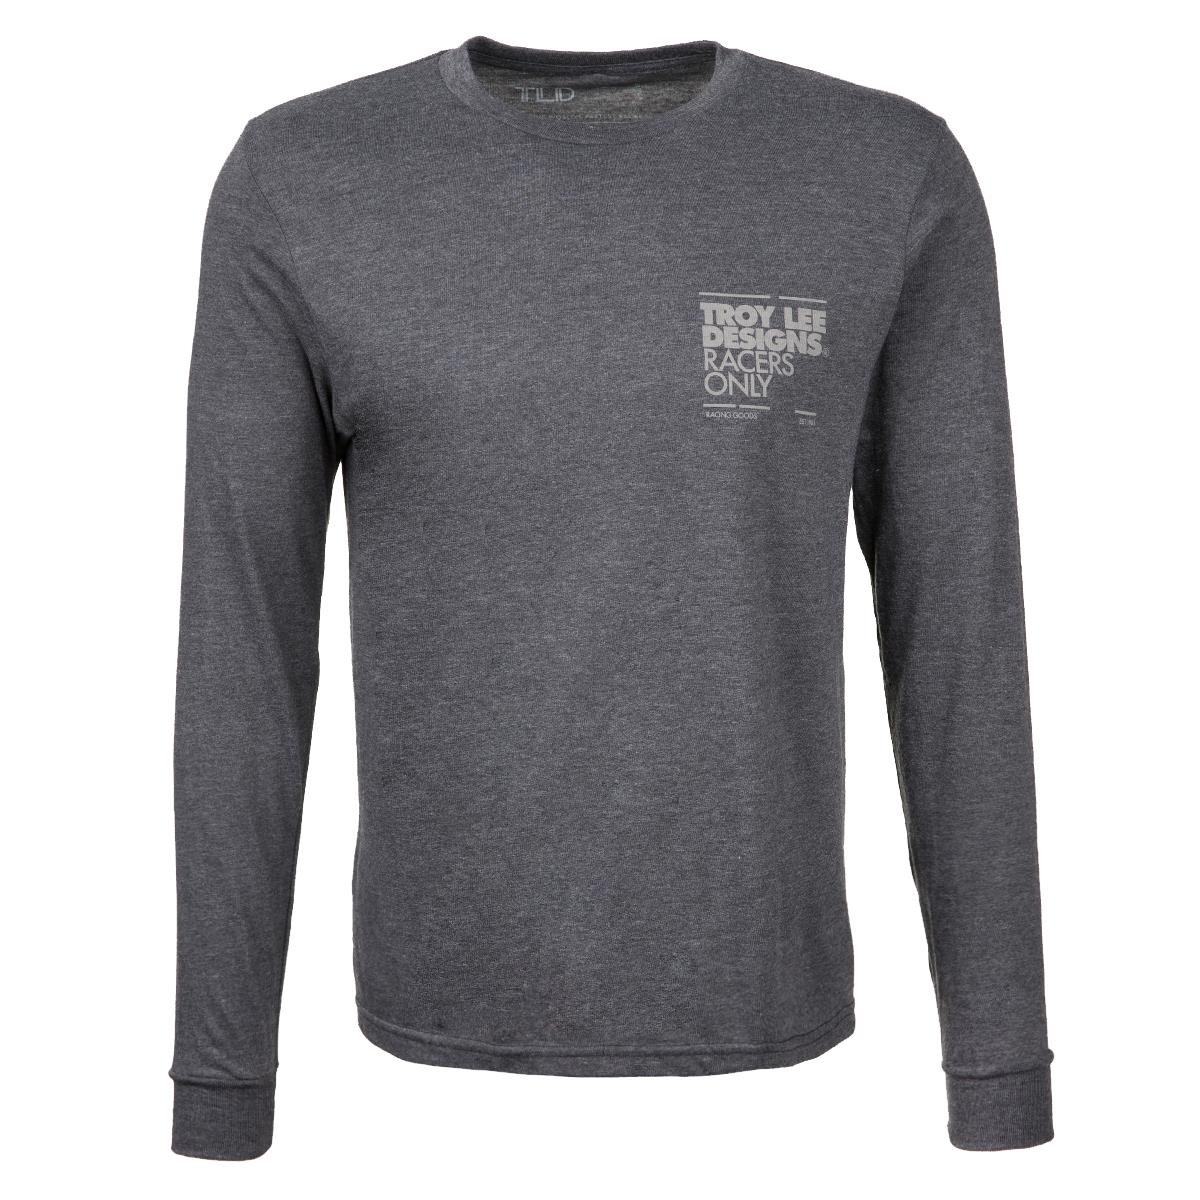 Troy Lee Designs Trail-Jersey Langarm Flowline Racers Only - Charcoal Heather